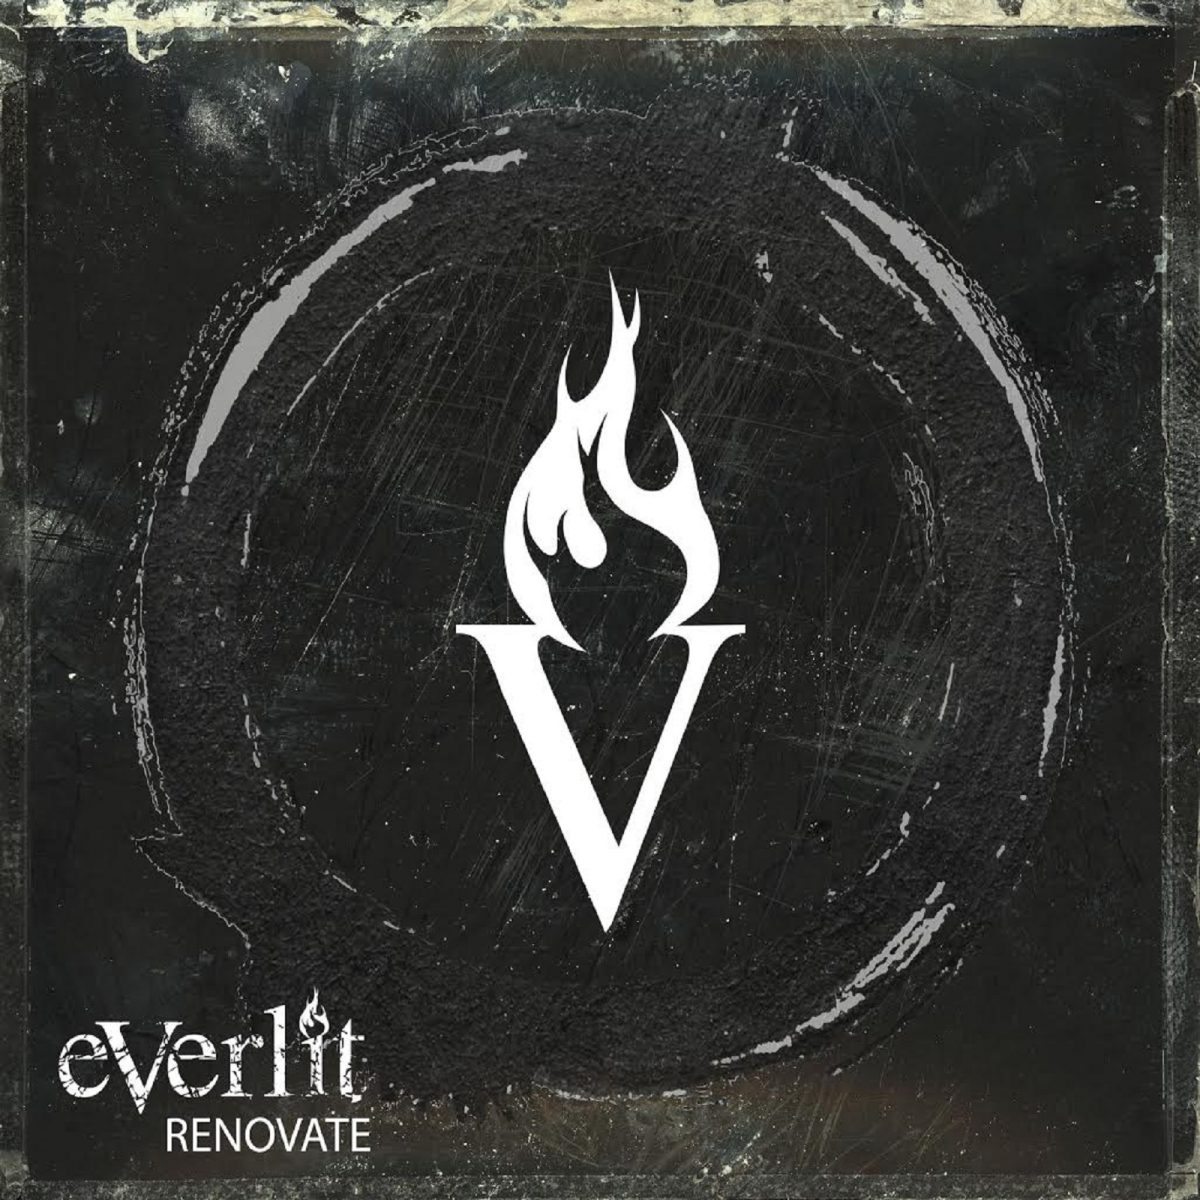 Everlit - Renovate EP cover- 1600x1600